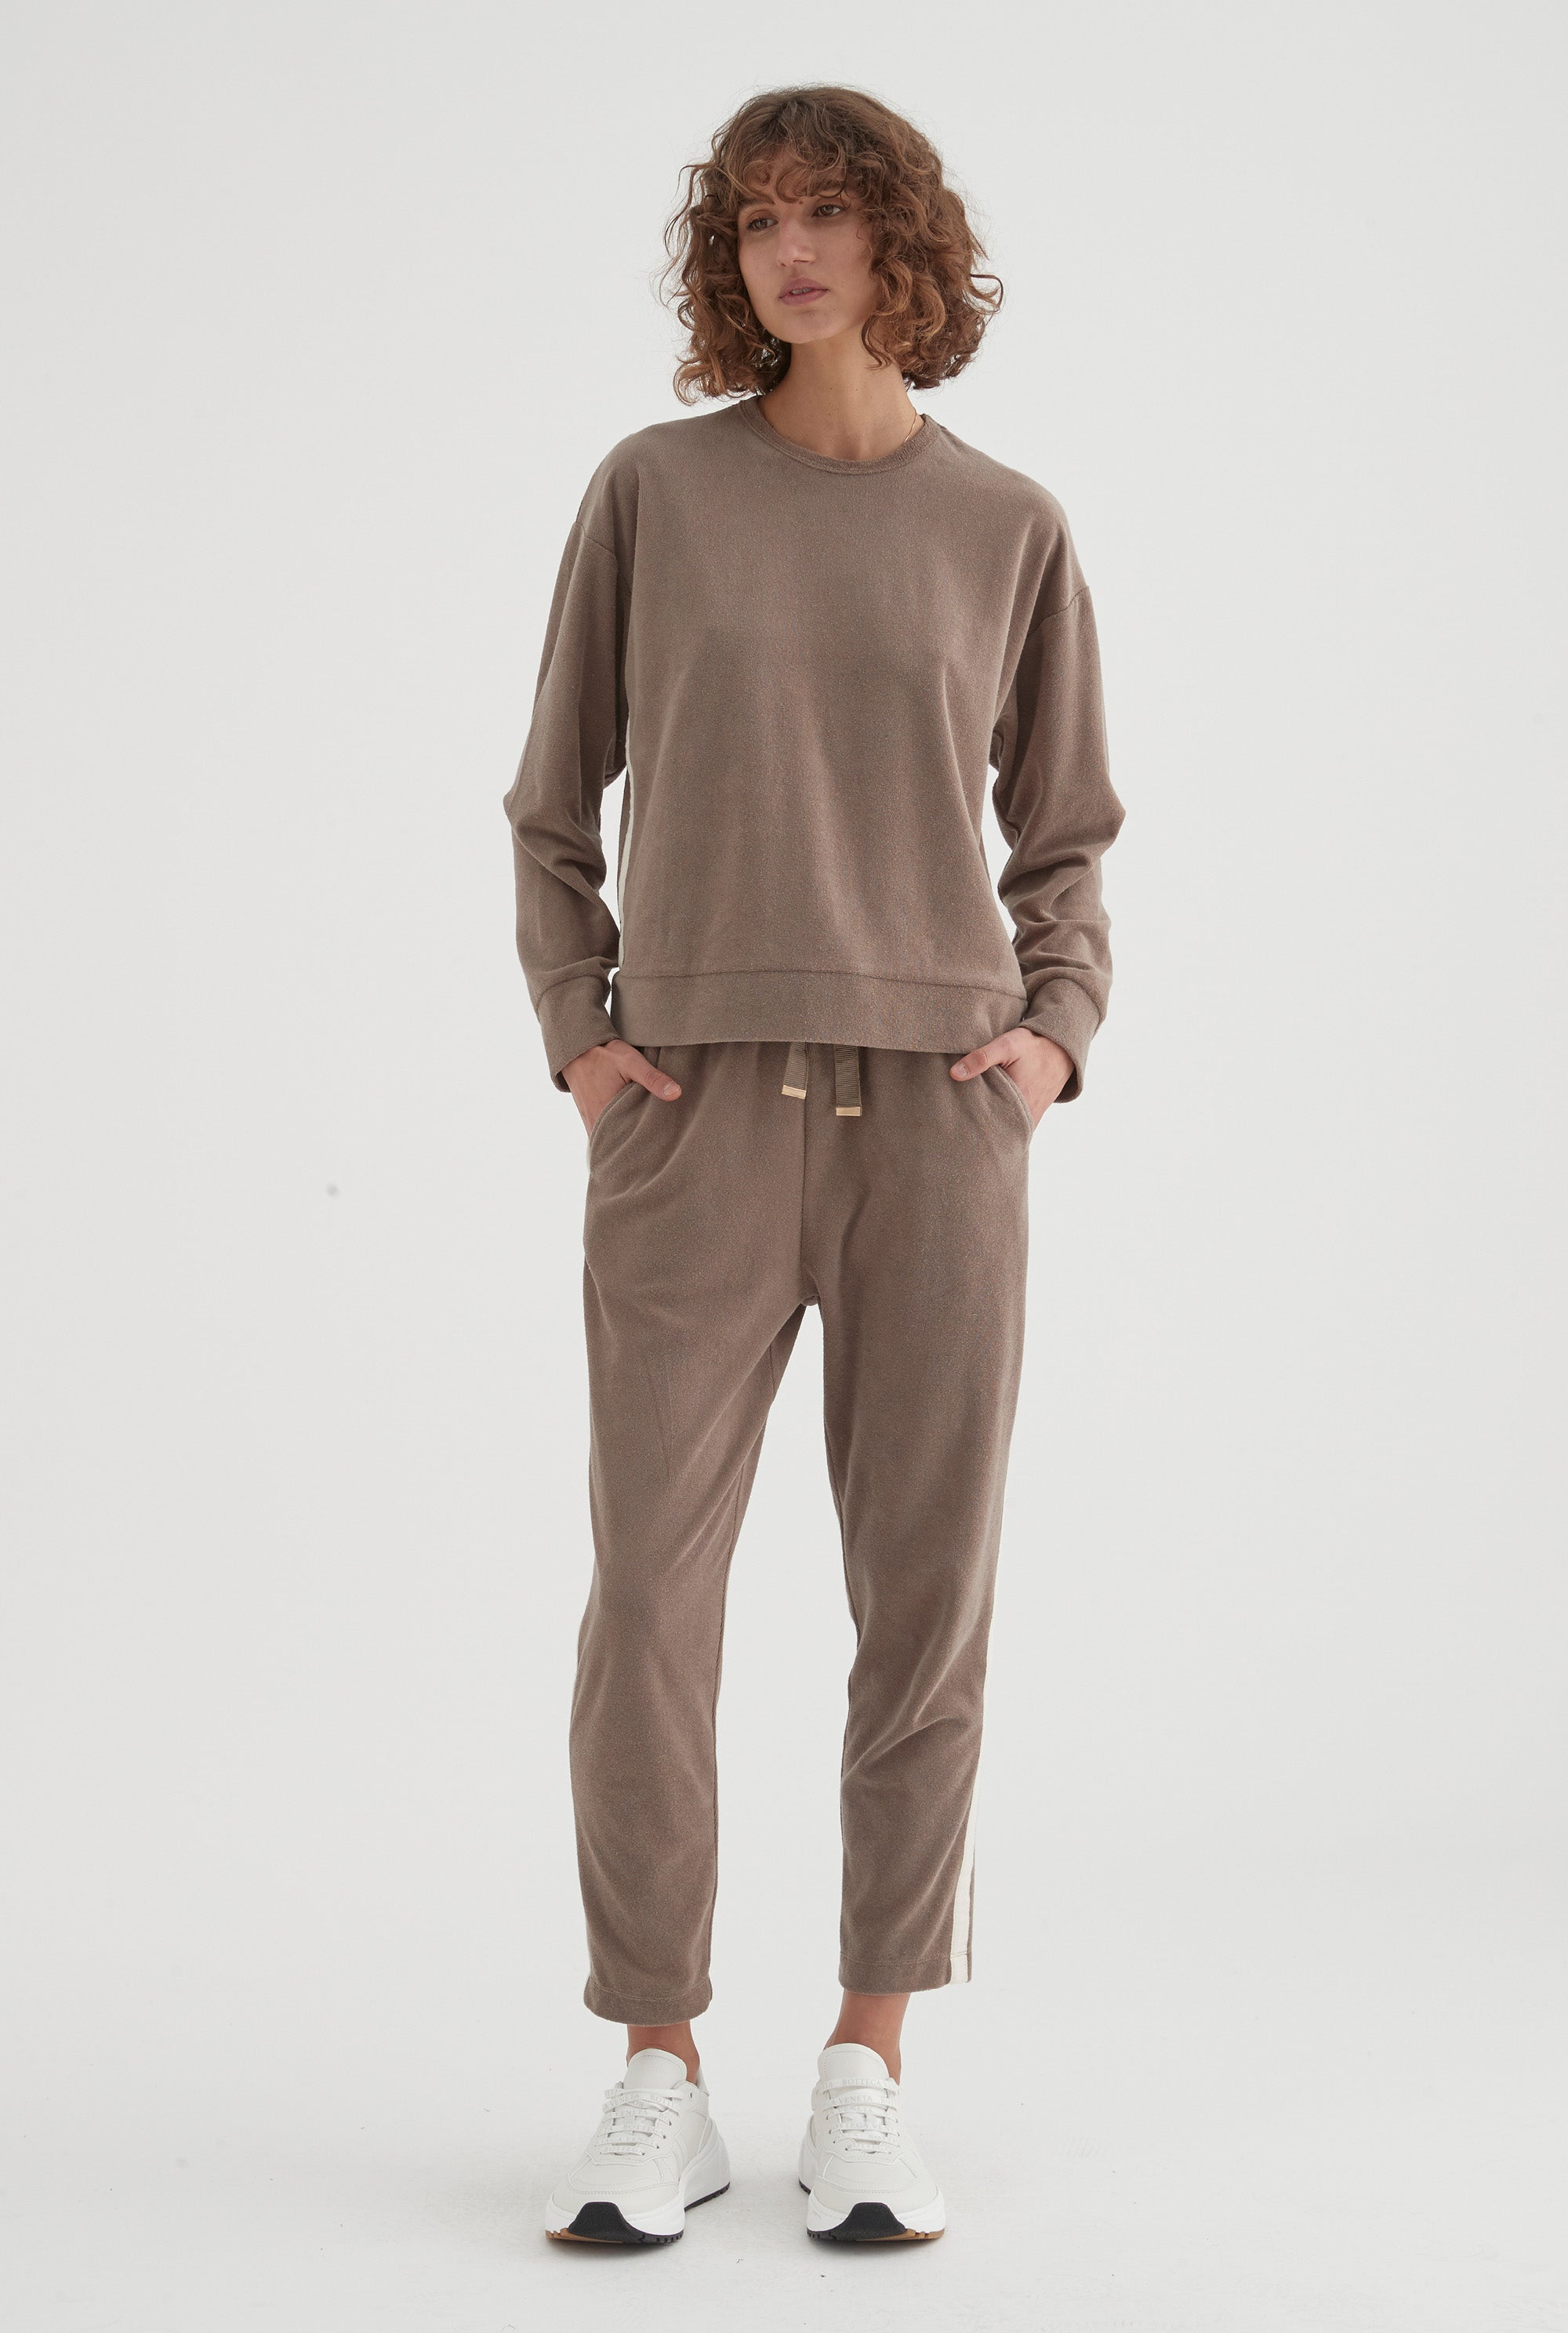 Terry Towel Lounge Pant - Military